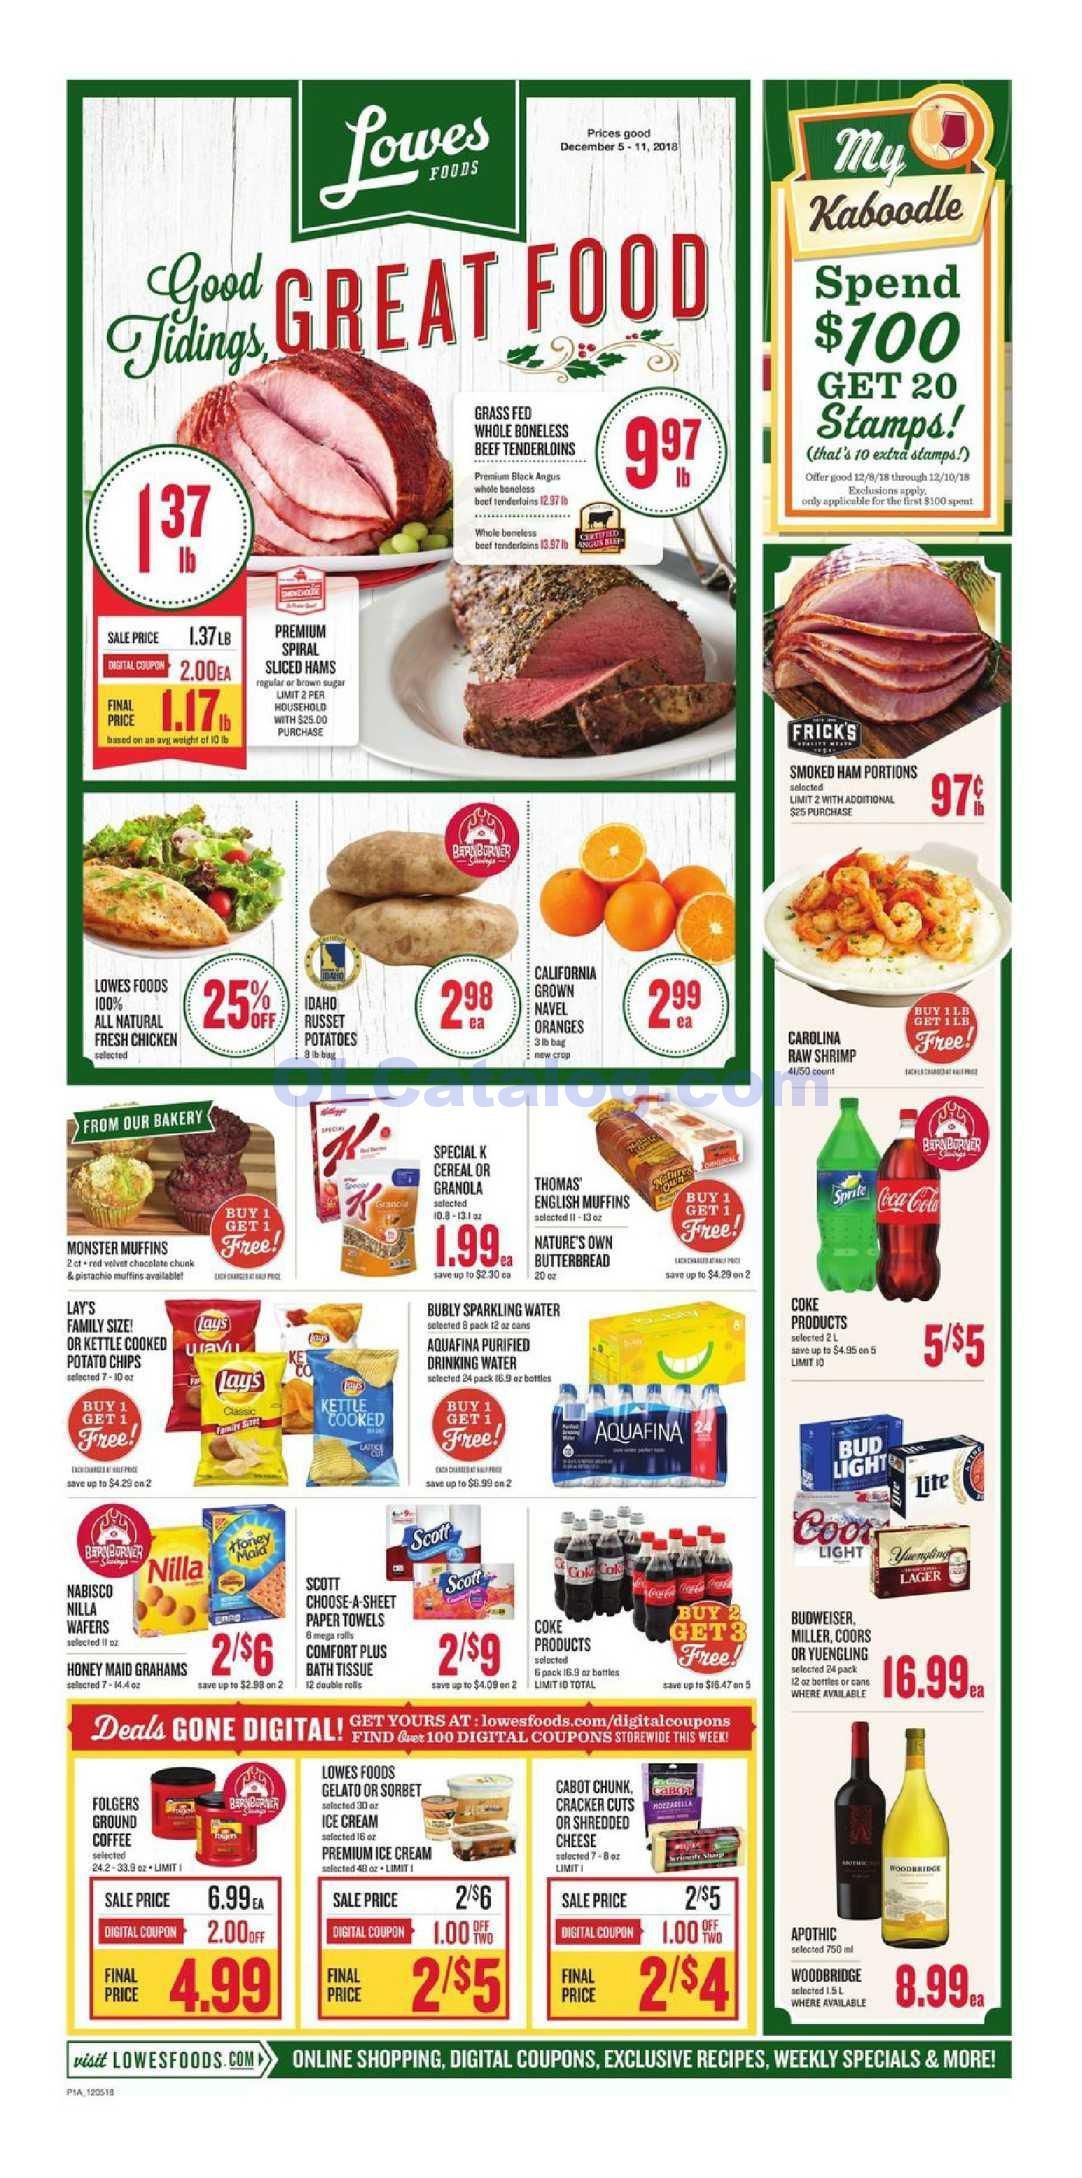 Lowes foods Weekly Ad December 5 11, 2018. View the